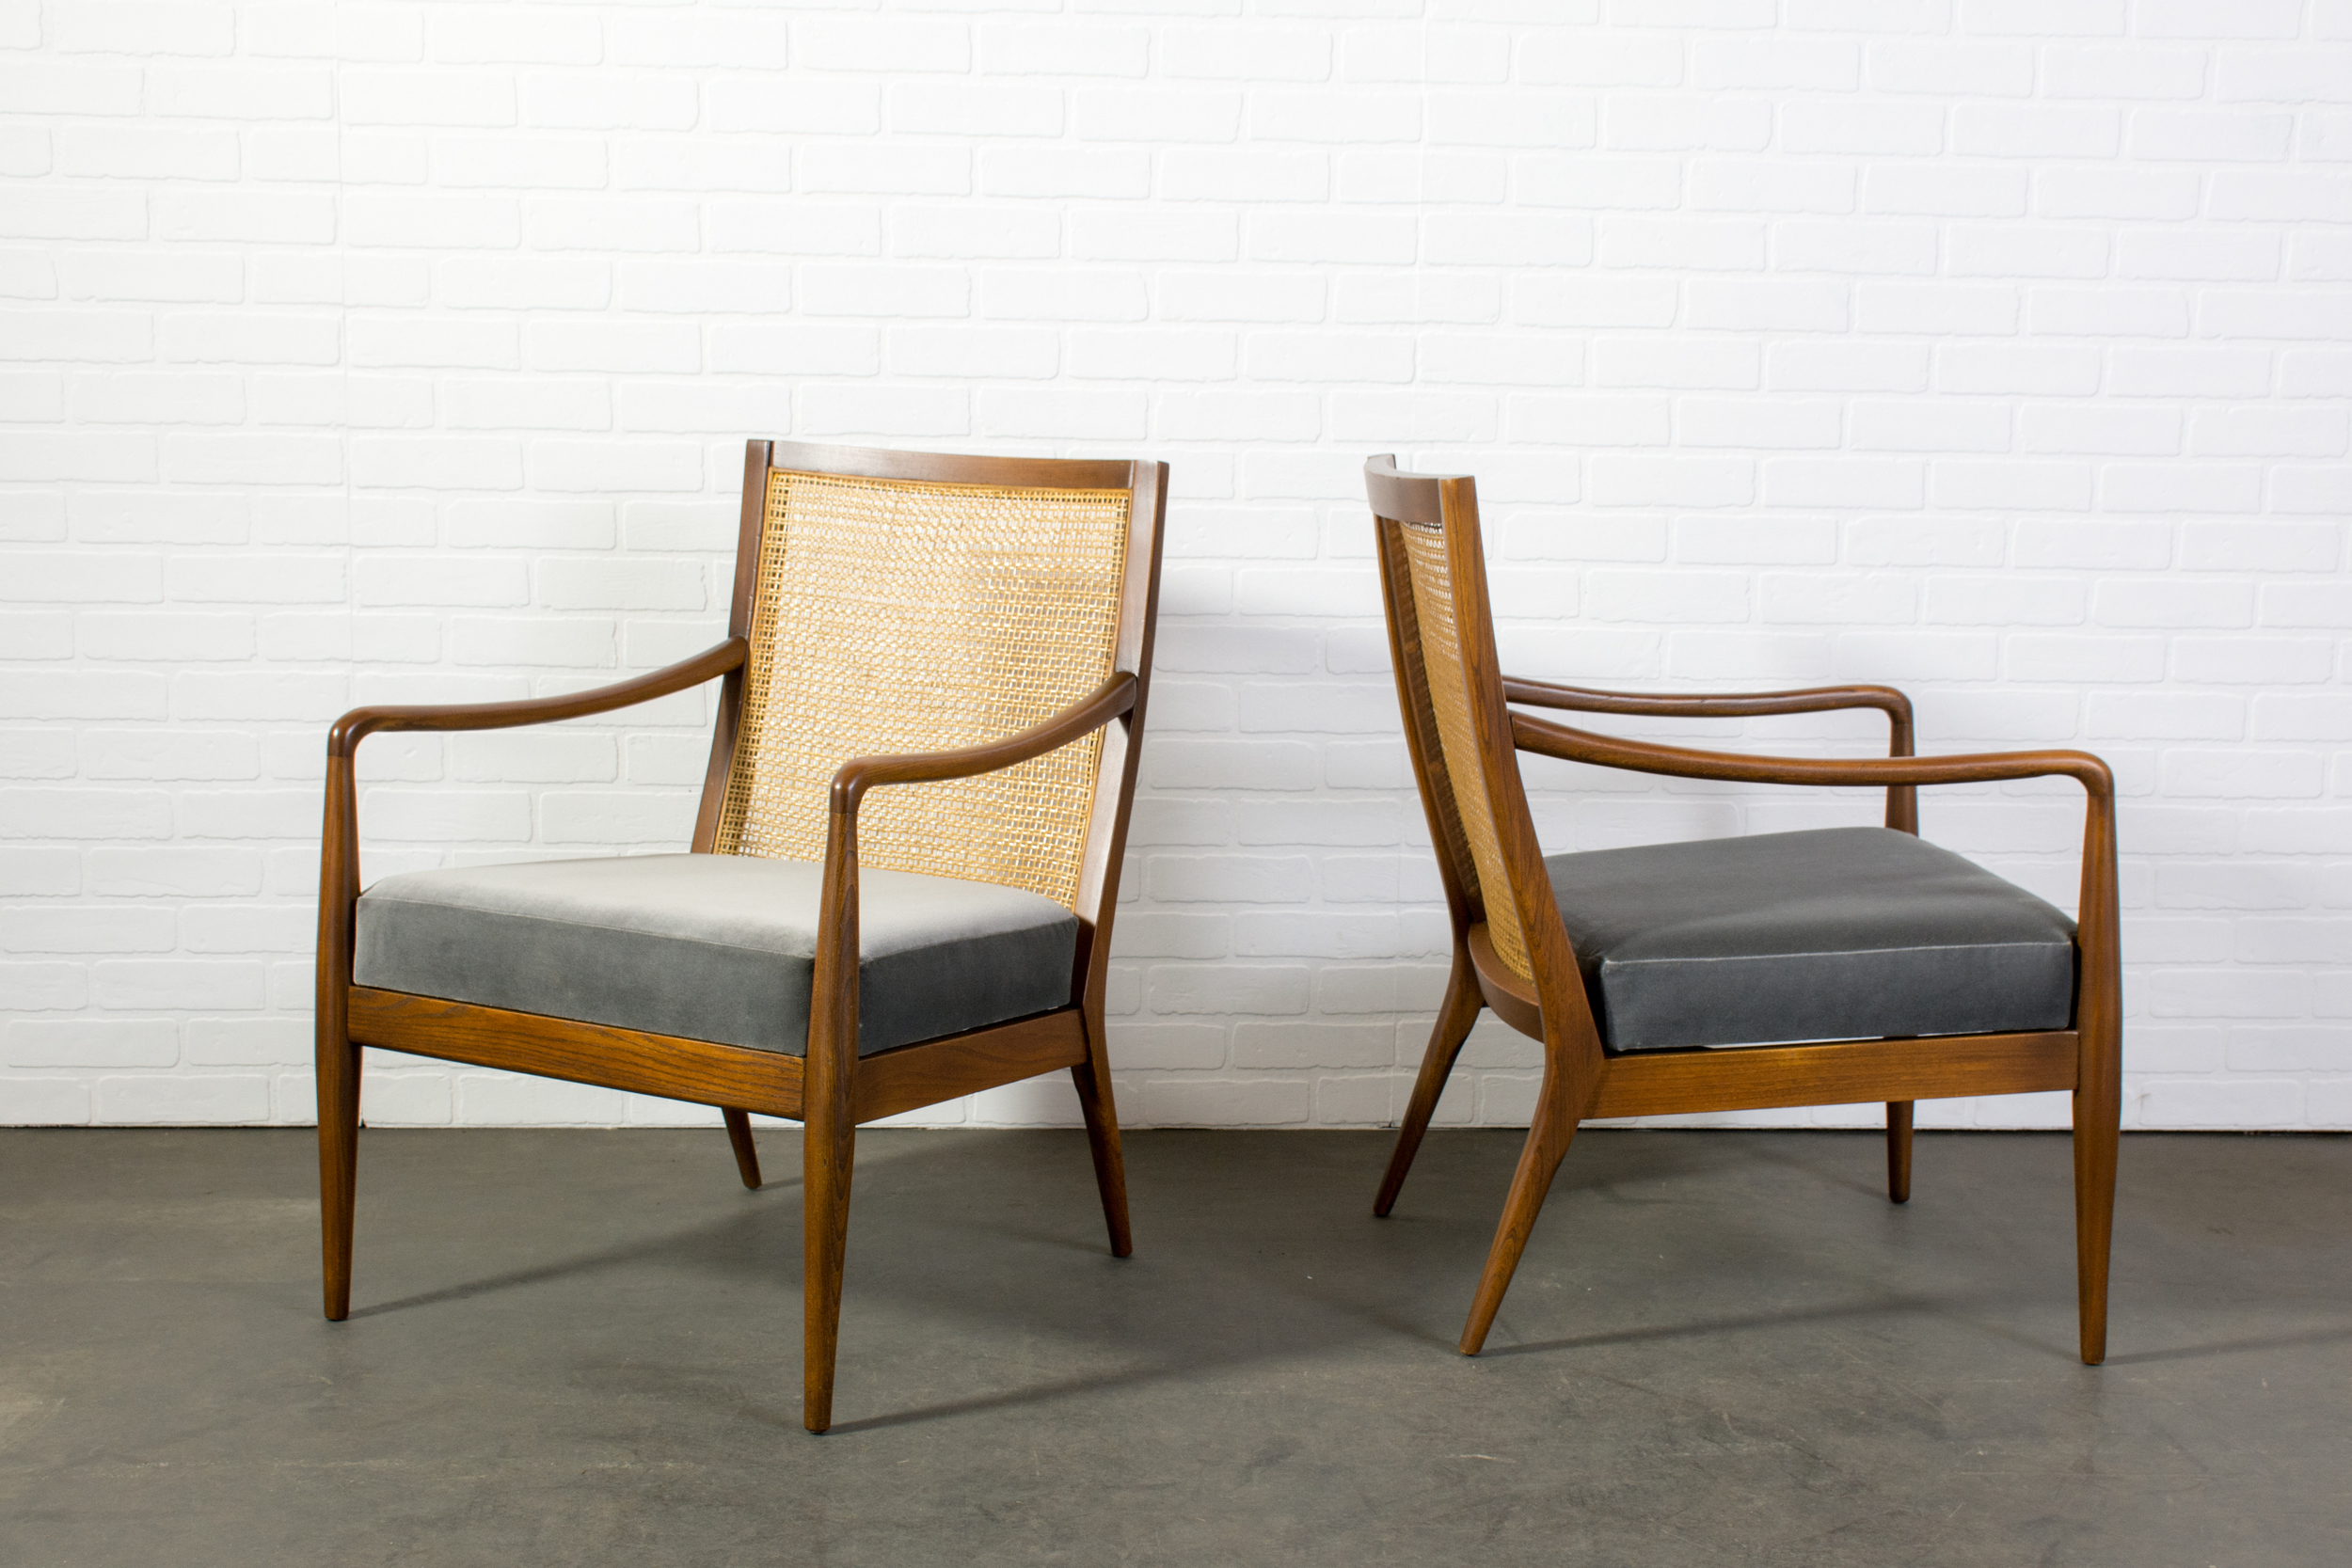 Pair of Vintage Mid-Century Chairs by Richardson Nemschoff